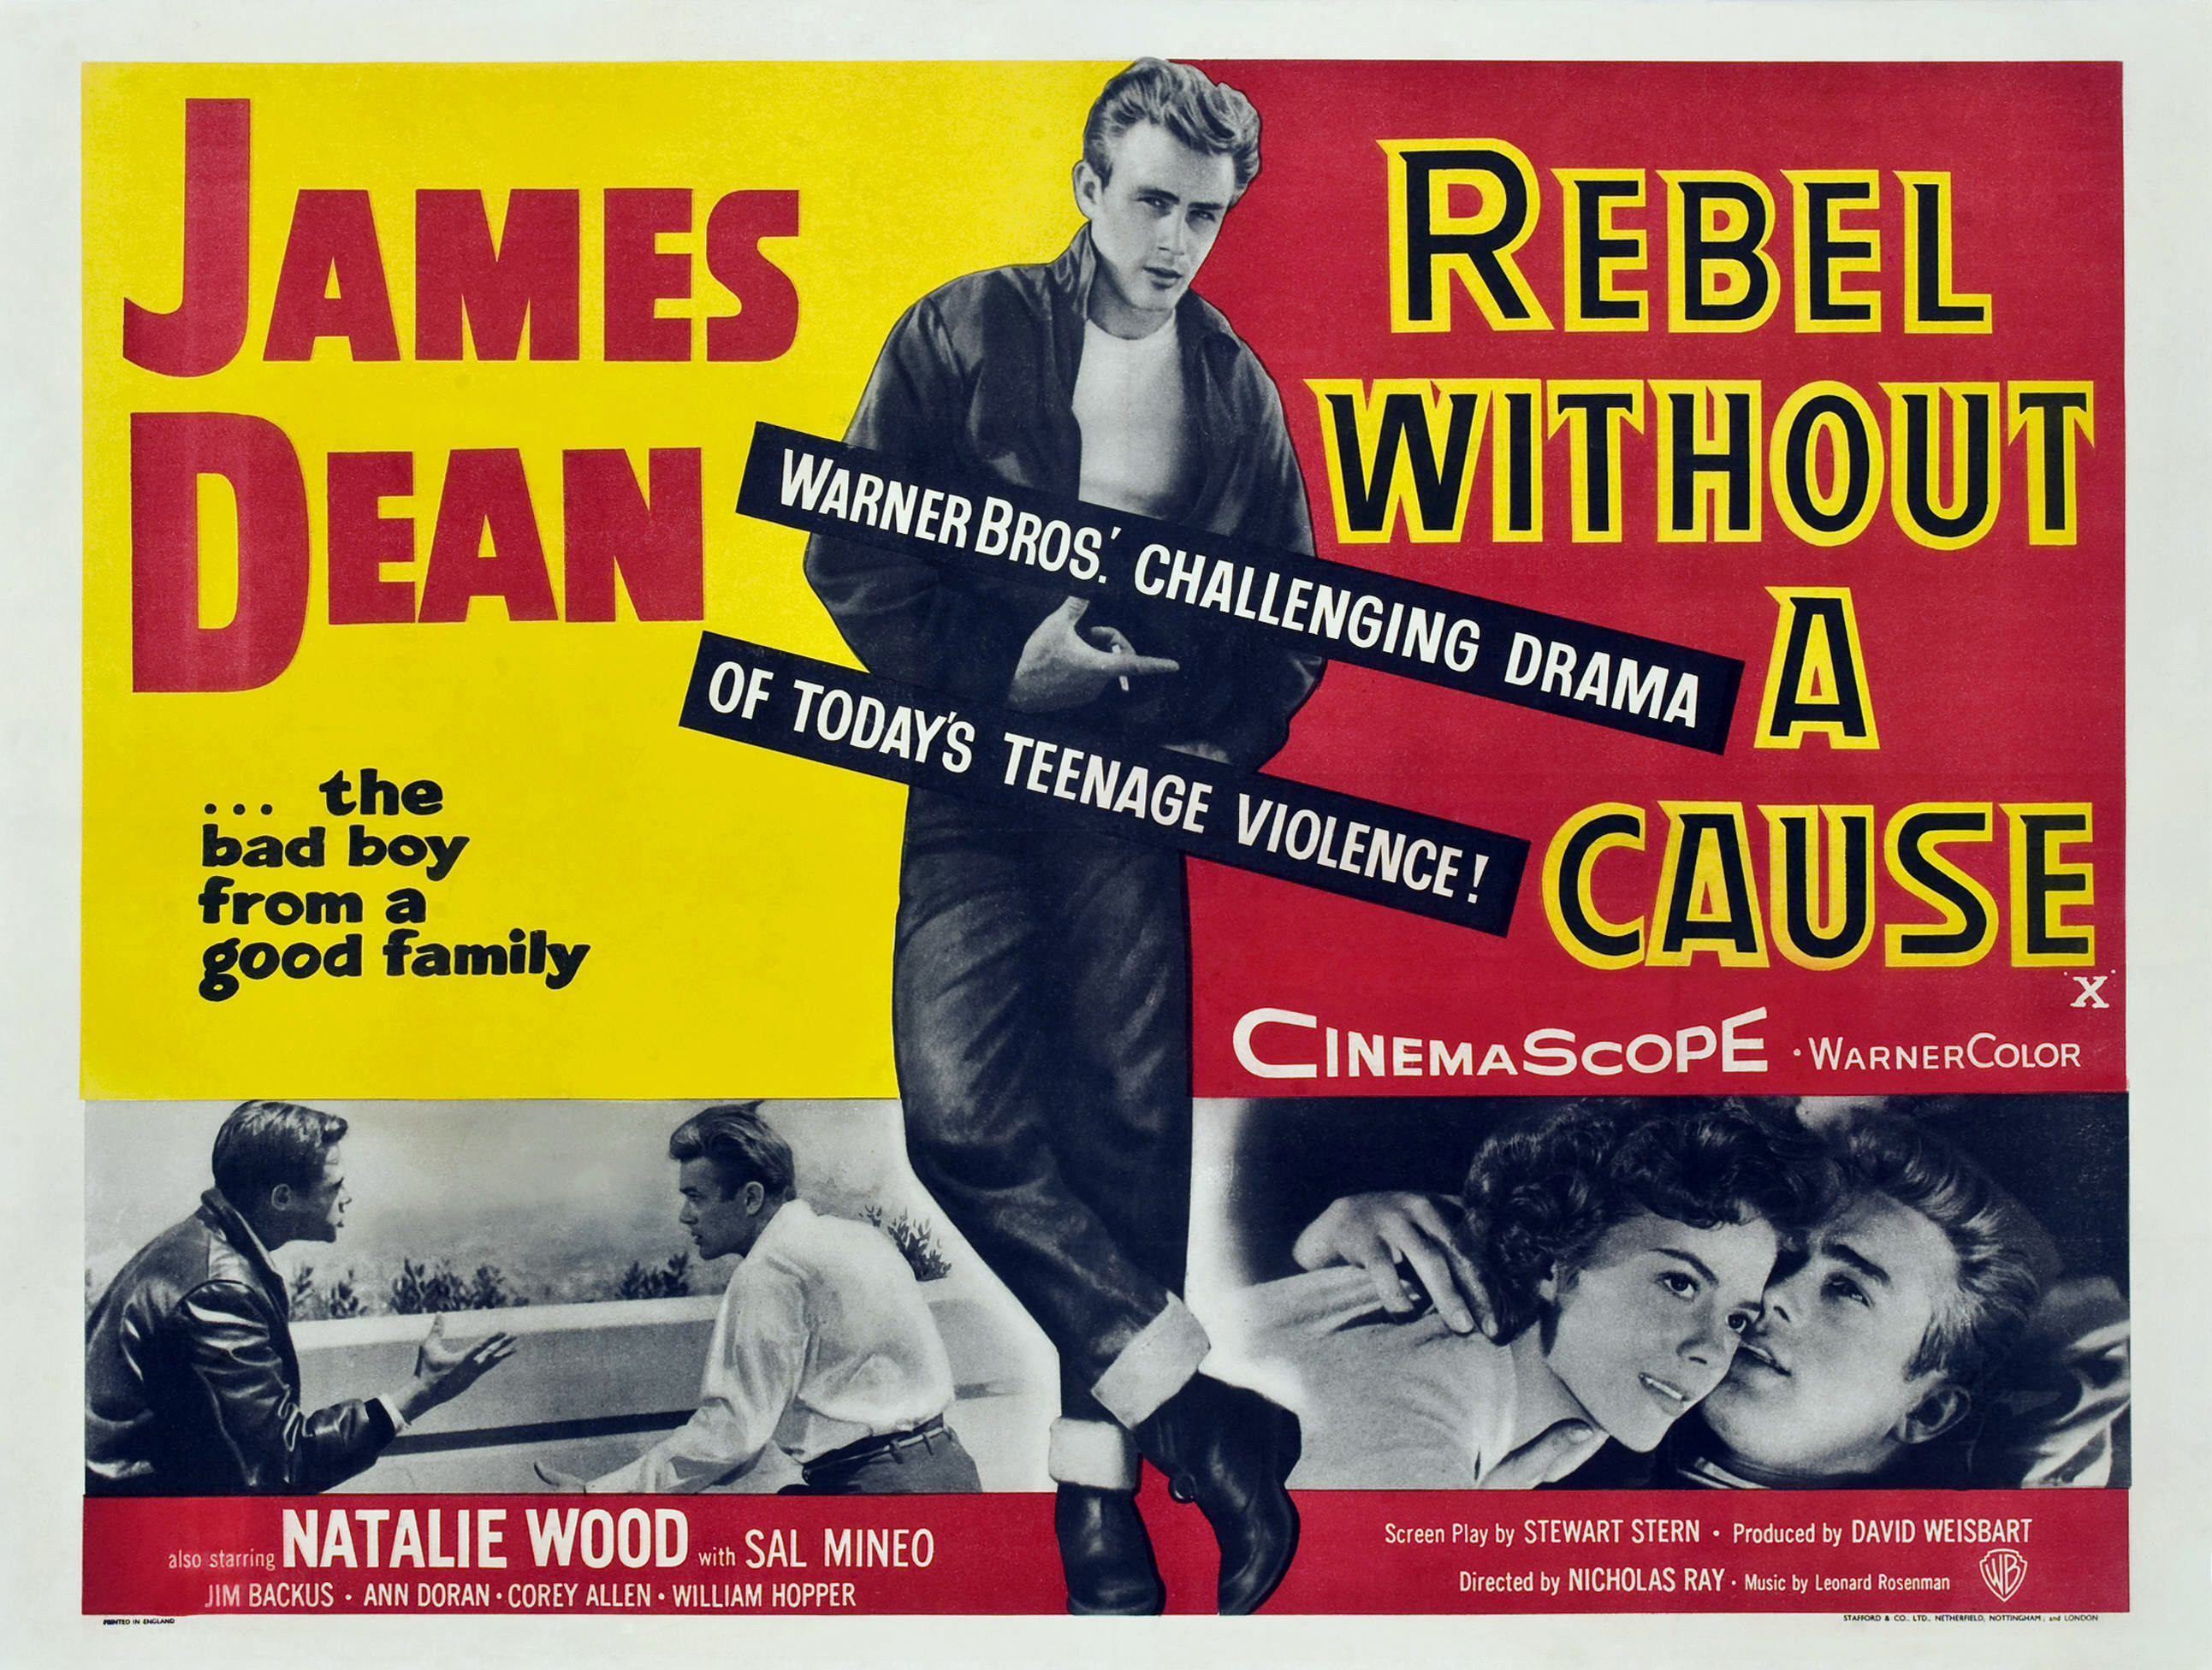 rebel-without-a-cause-movie-poster-1955